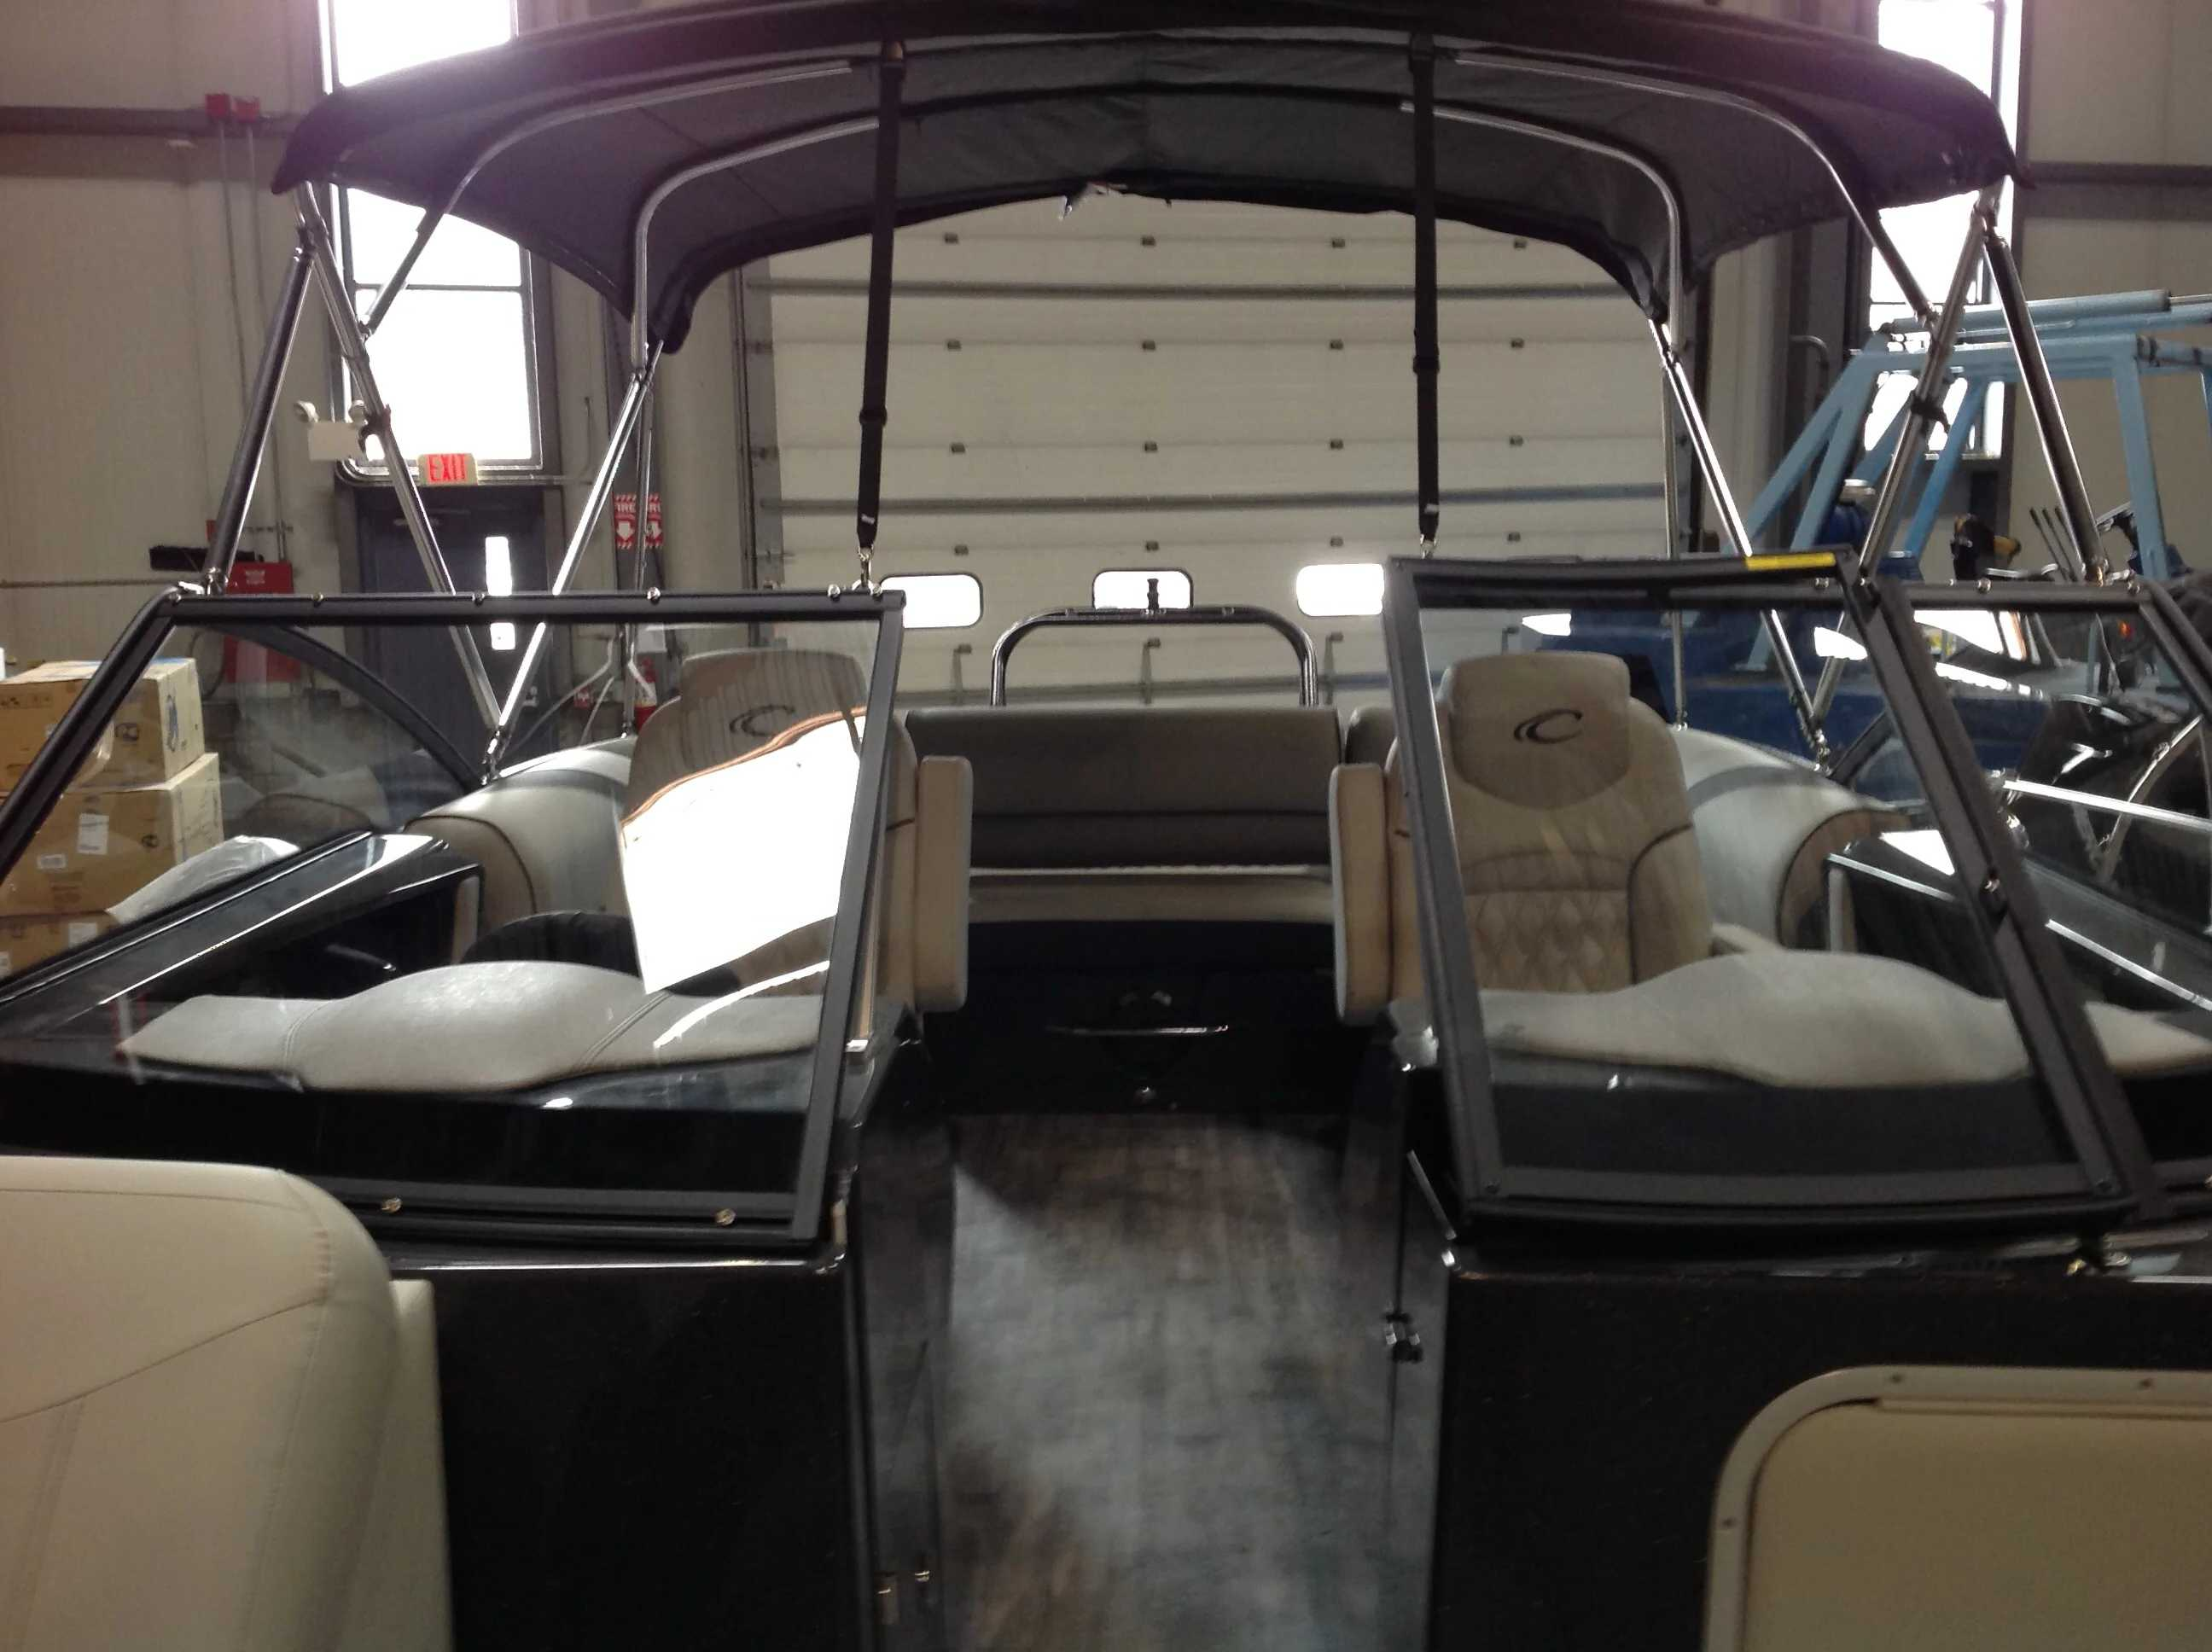 2021 Crest boat for sale, model of the boat is CONTINENTAL 250SLS & Image # 4 of 15